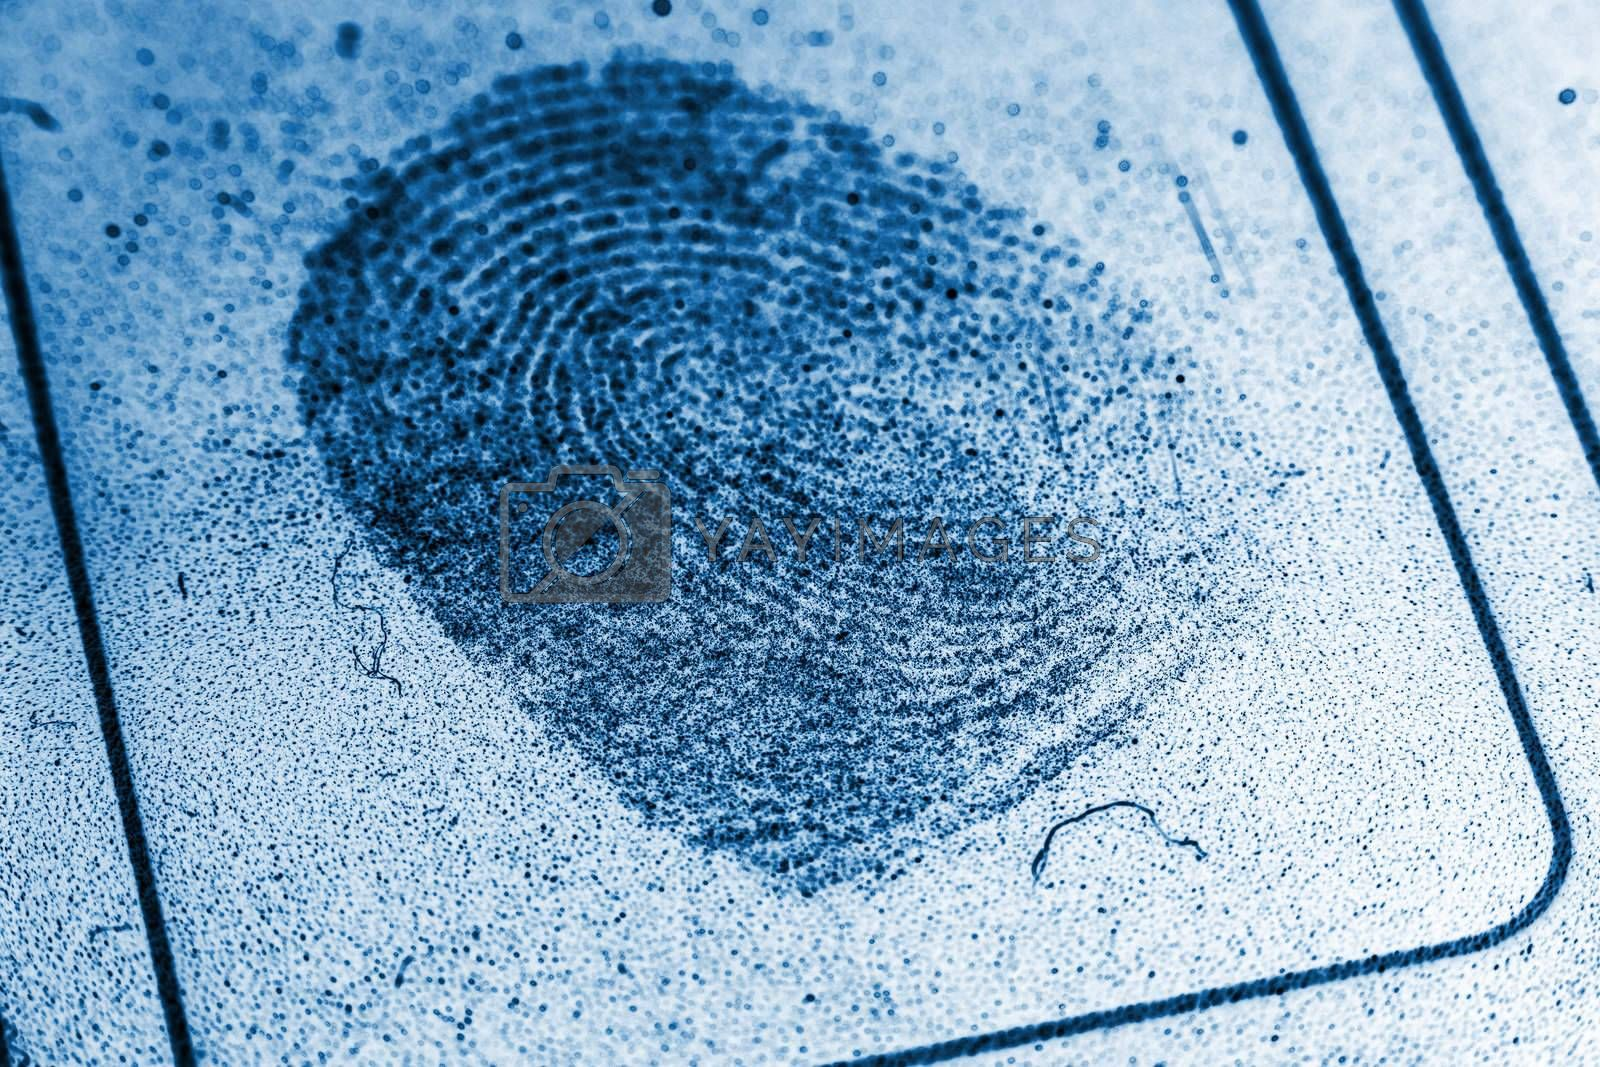 Royalty free image of Dusty Fingerprint Record by p0temkin